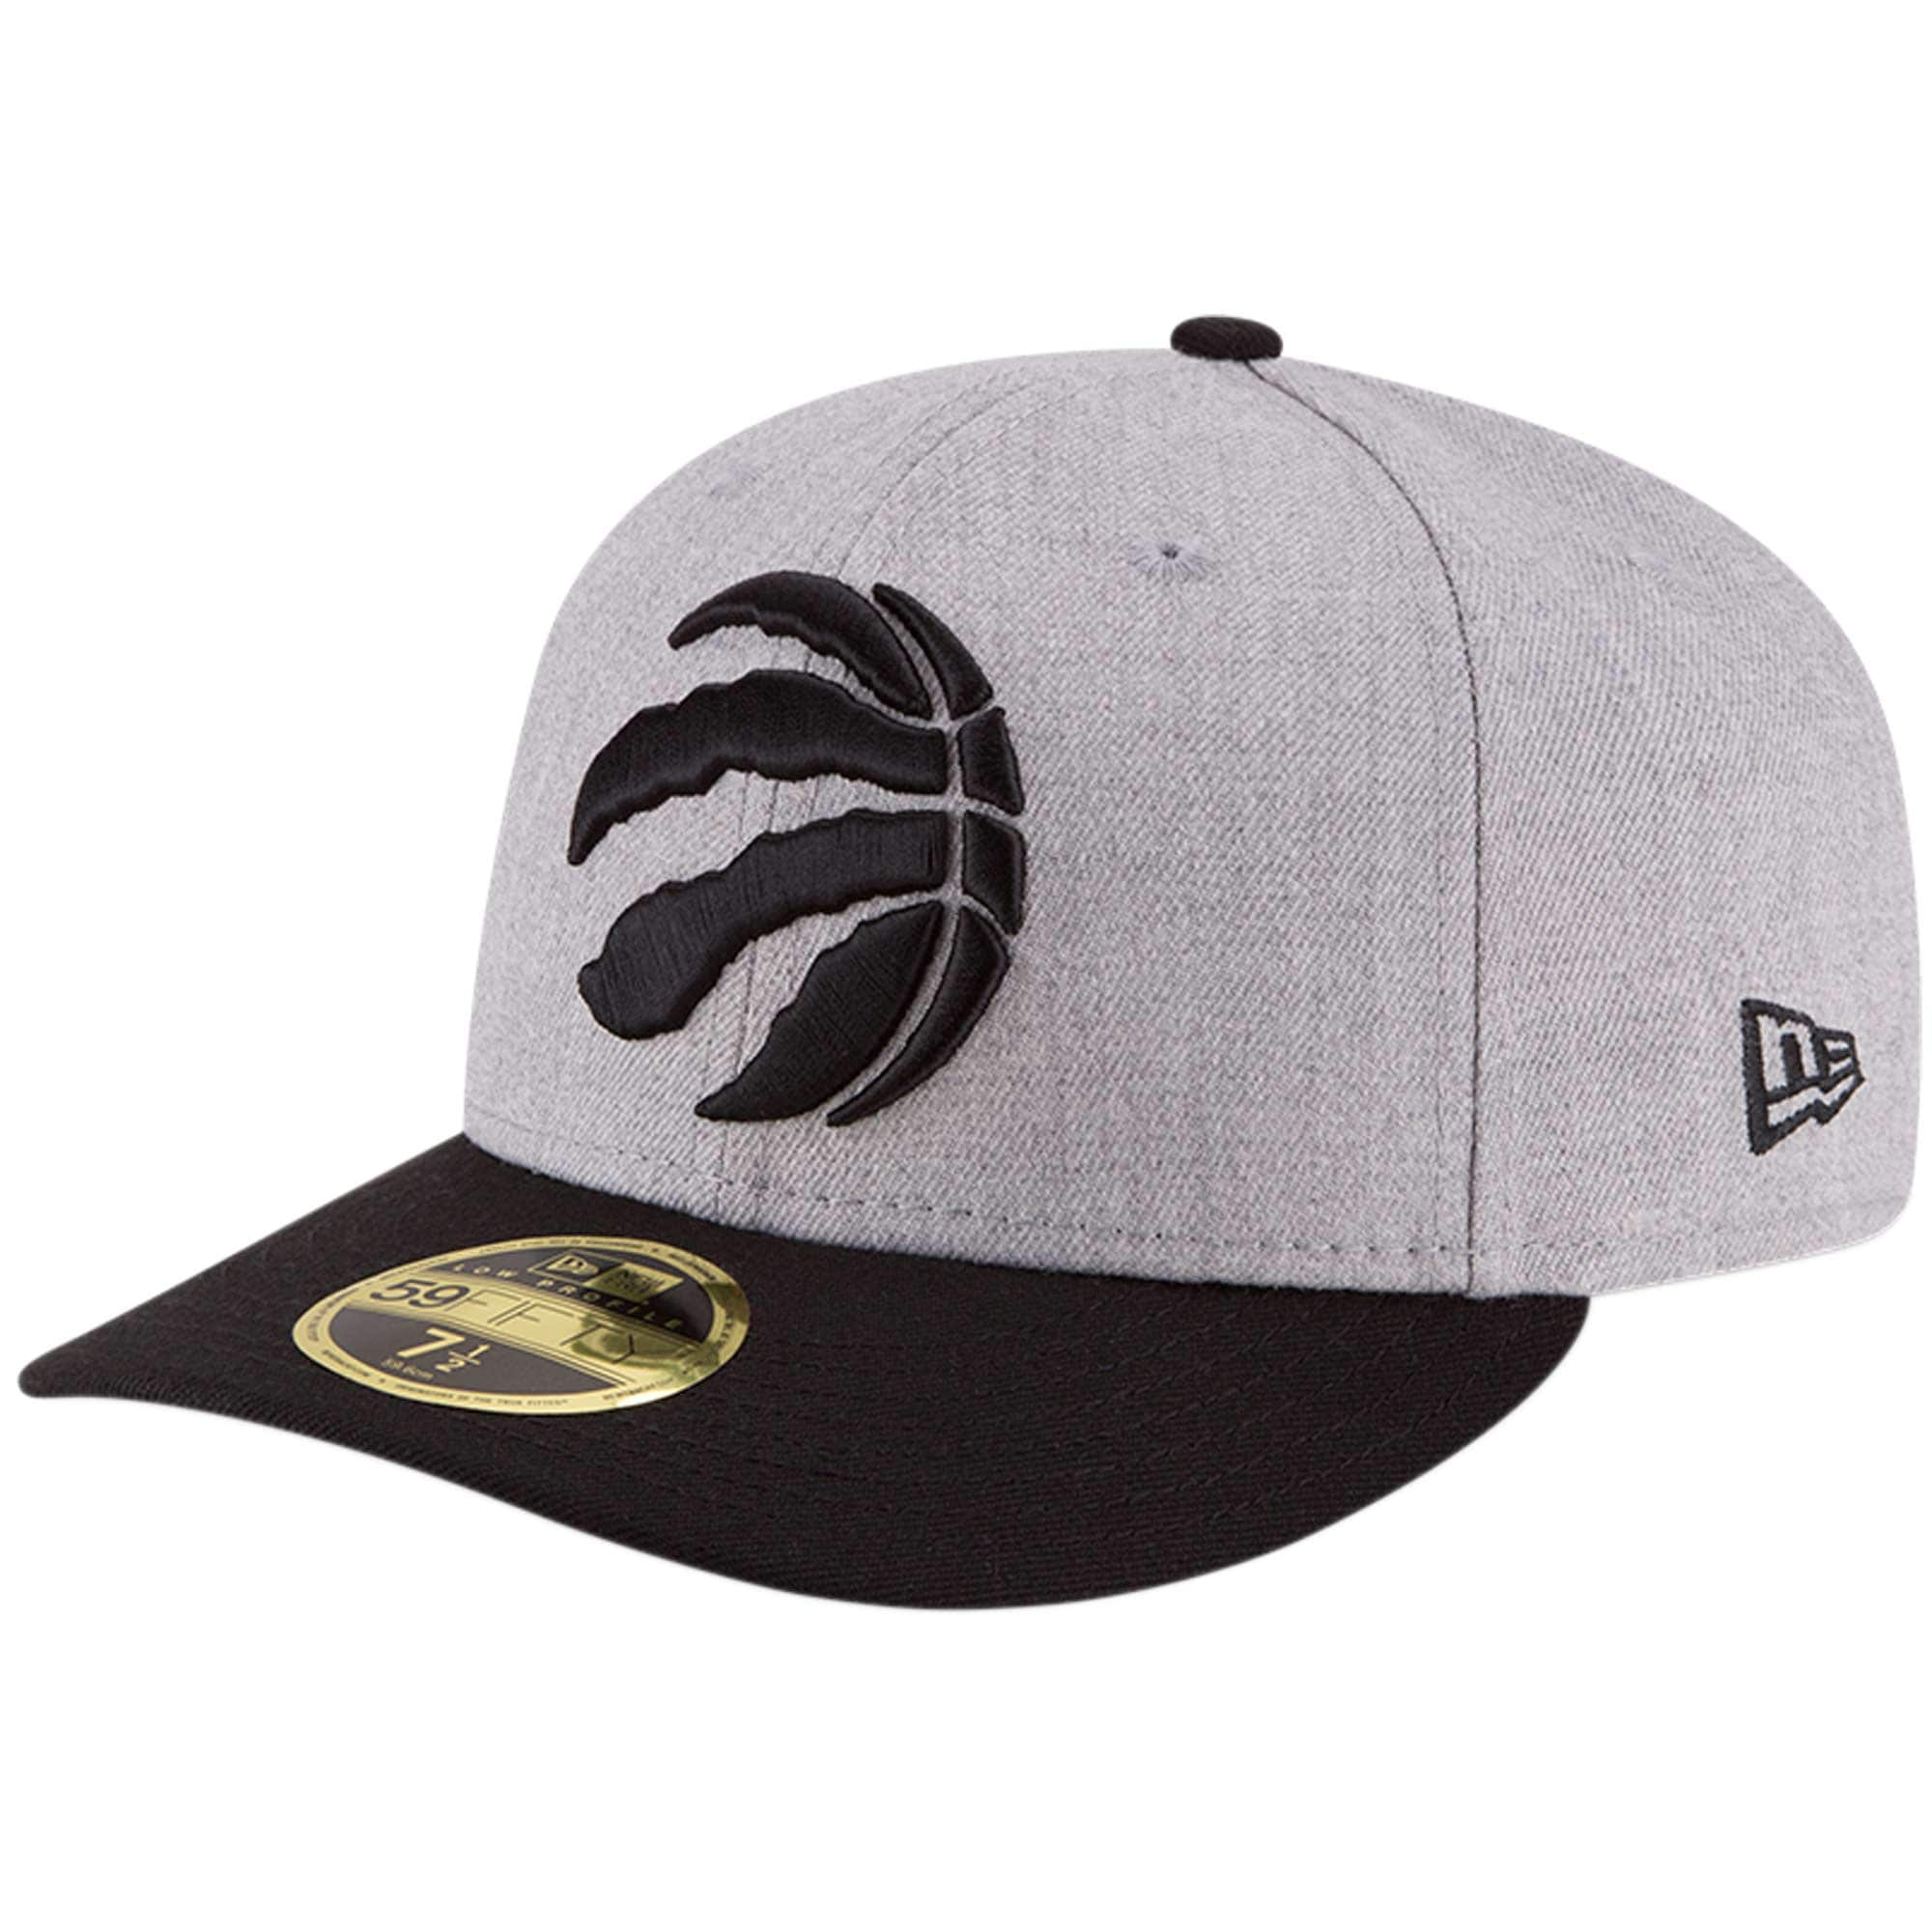 Toronto Raptors New Era Two-Tone Low Profile 59FIFTY Fitted Hat - Heathered Gray/Black